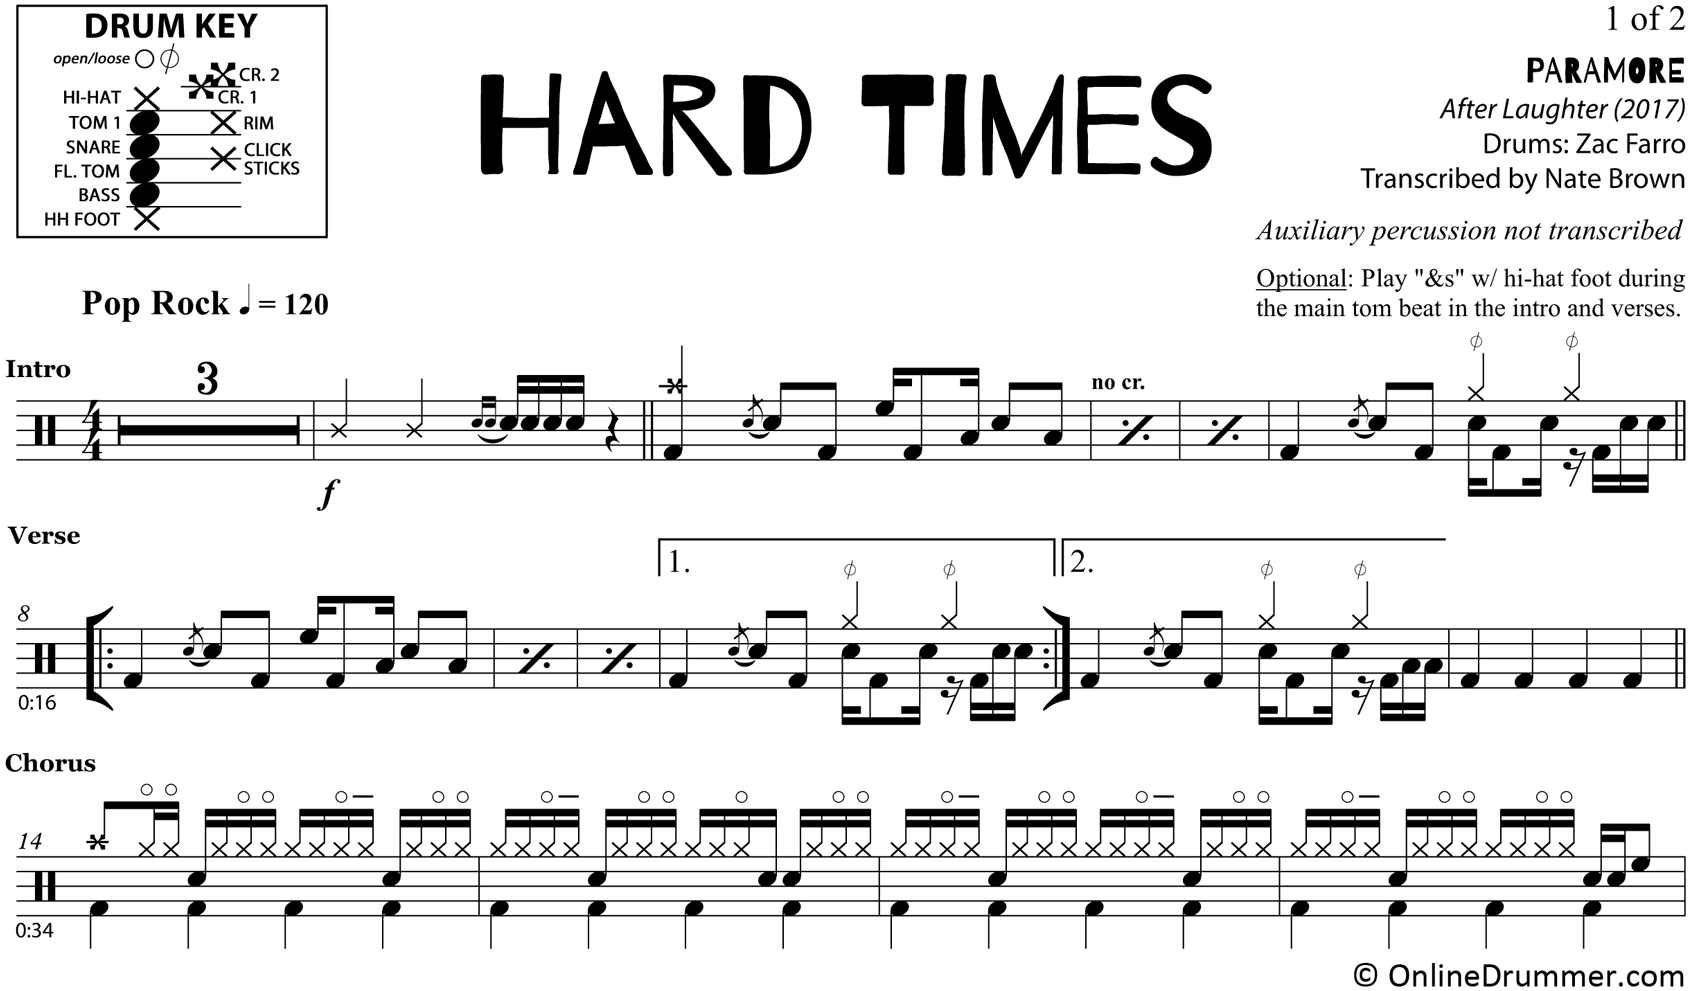 Hard Times - Paramore - Drum Sheet Music